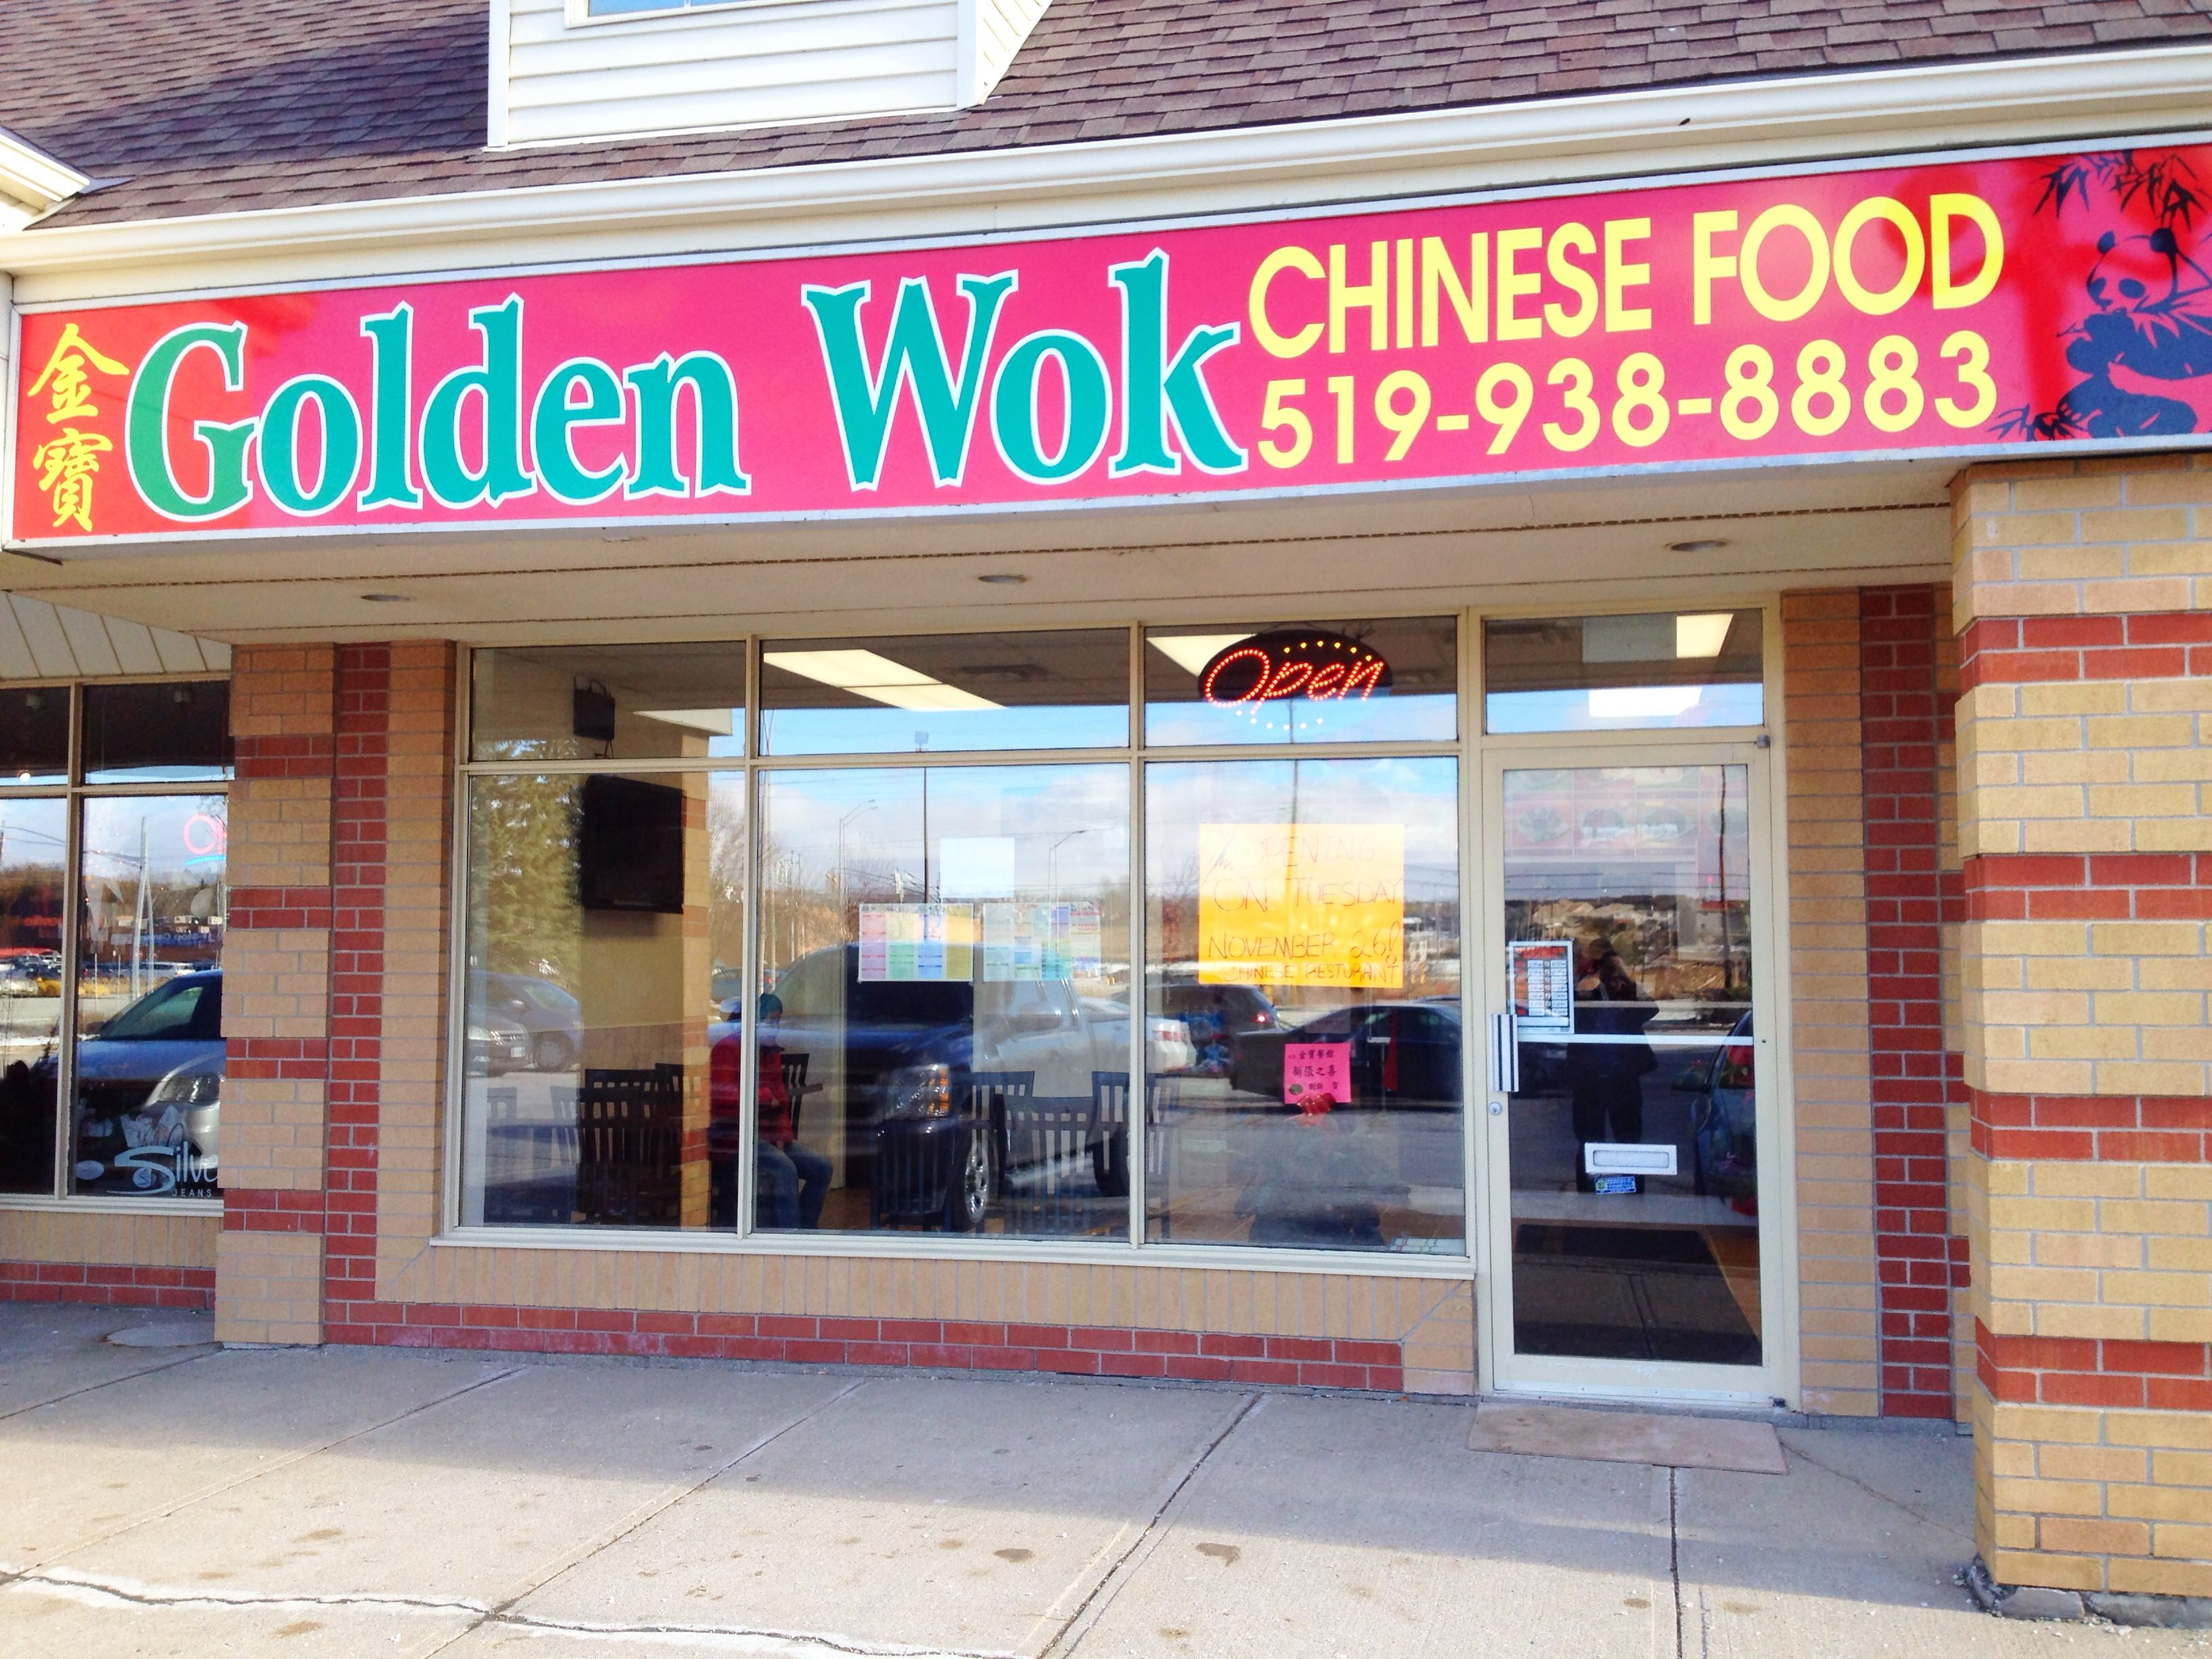 Yup The Golden Wok Is Now Open For Business And With A 15 Discount For The First Week How Awesome Is That Golden Wok Chinese Restaurant Chinese Food Hunan